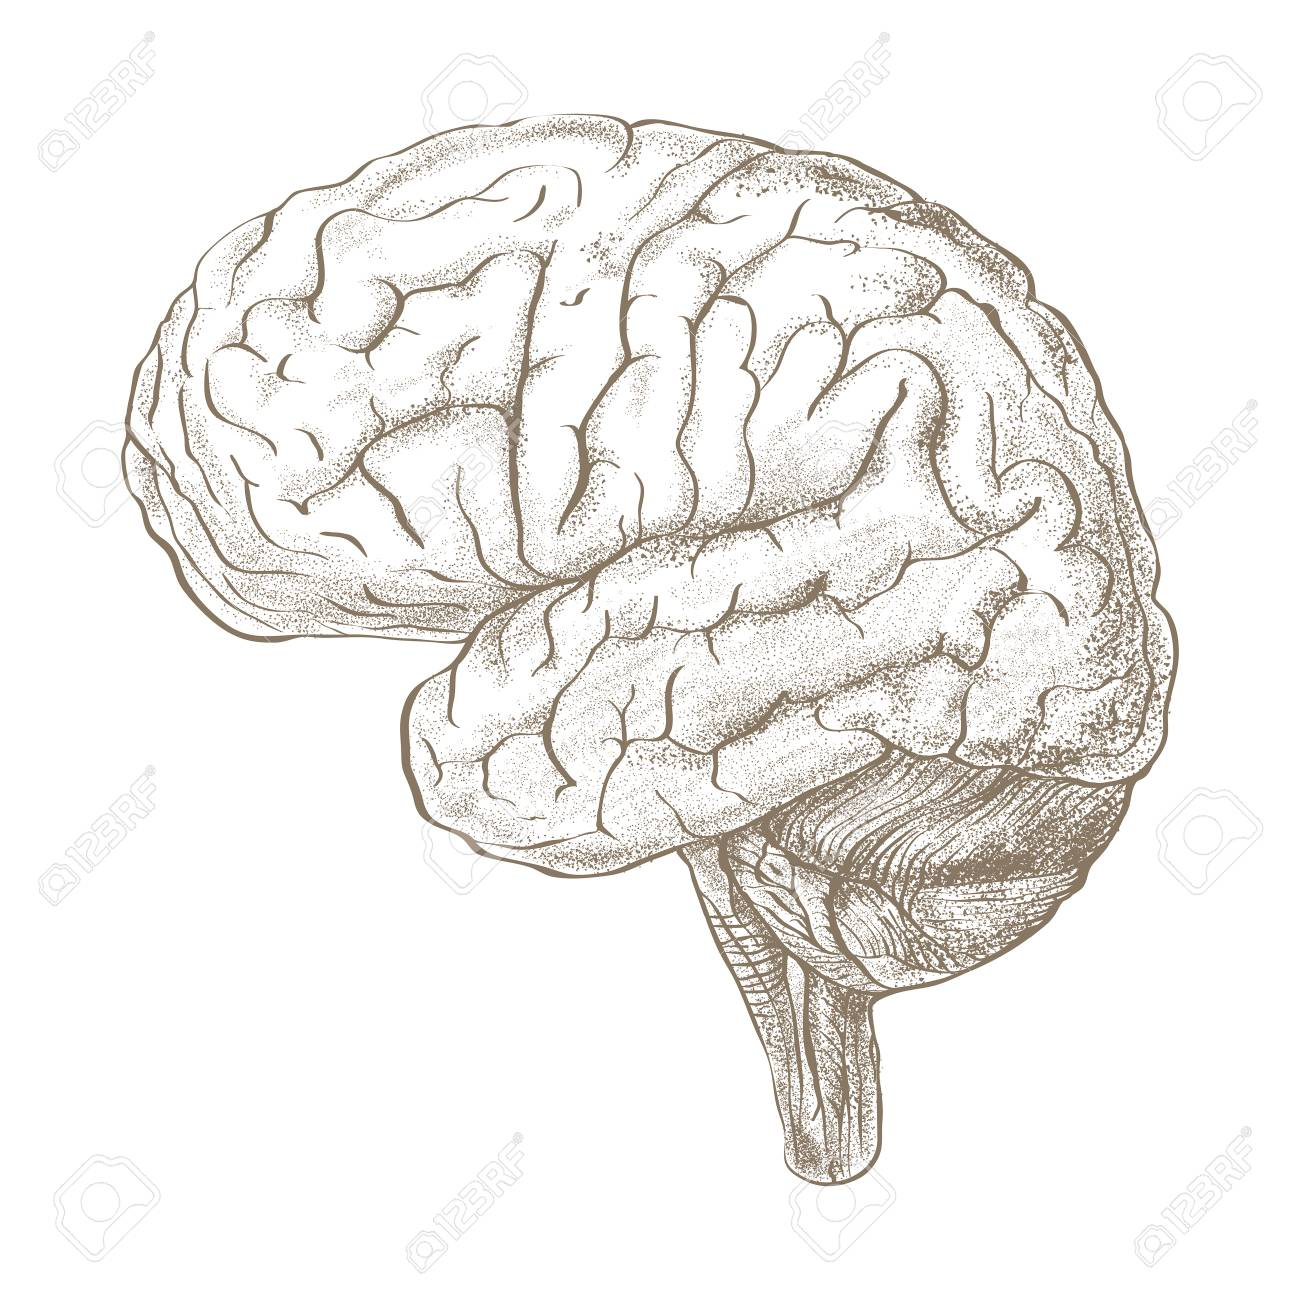 Brain as a pencil sketch style image stock photo 71241278